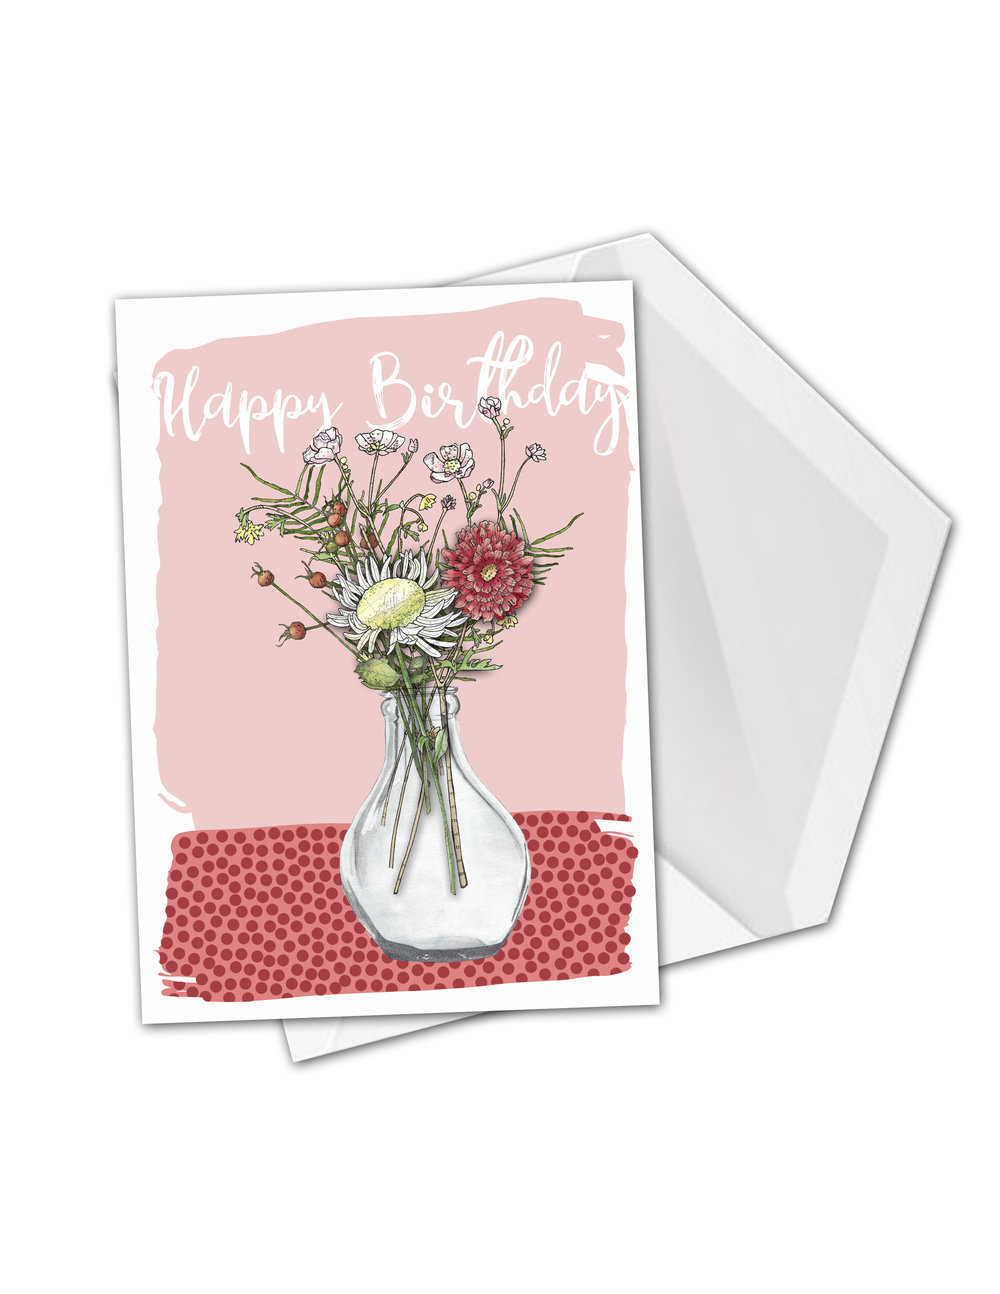 CA Small round clear vase flowers card.jpg